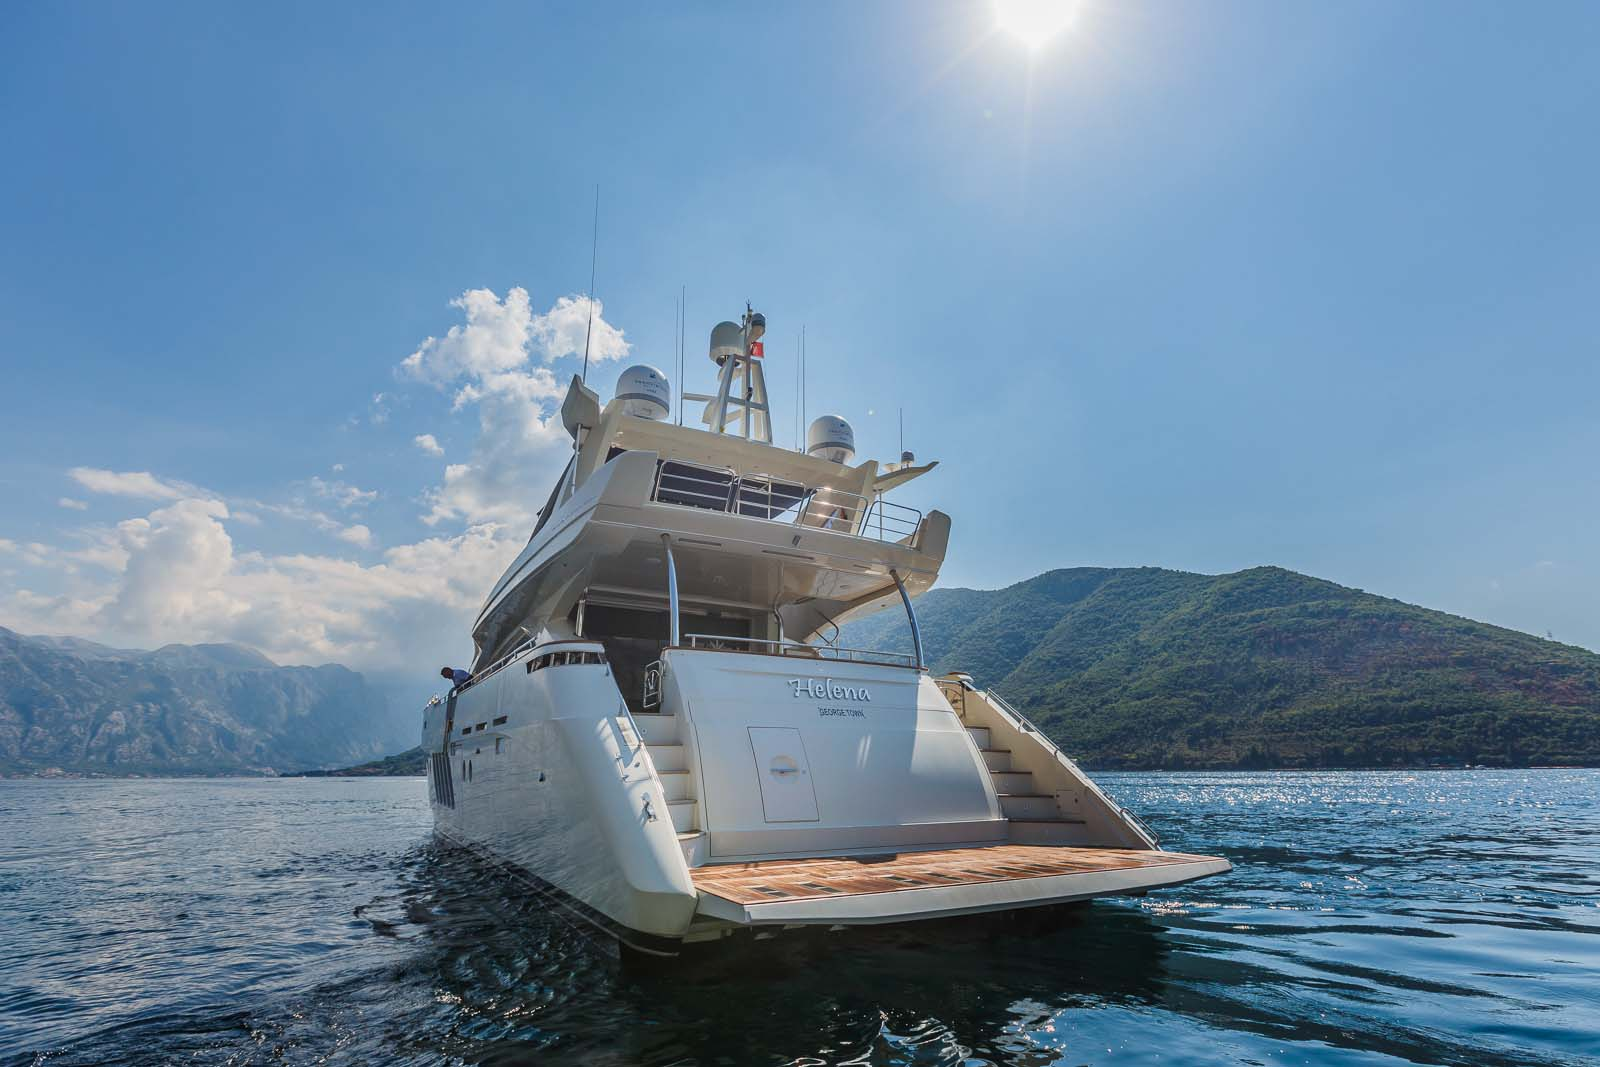 Aft view of the yacht